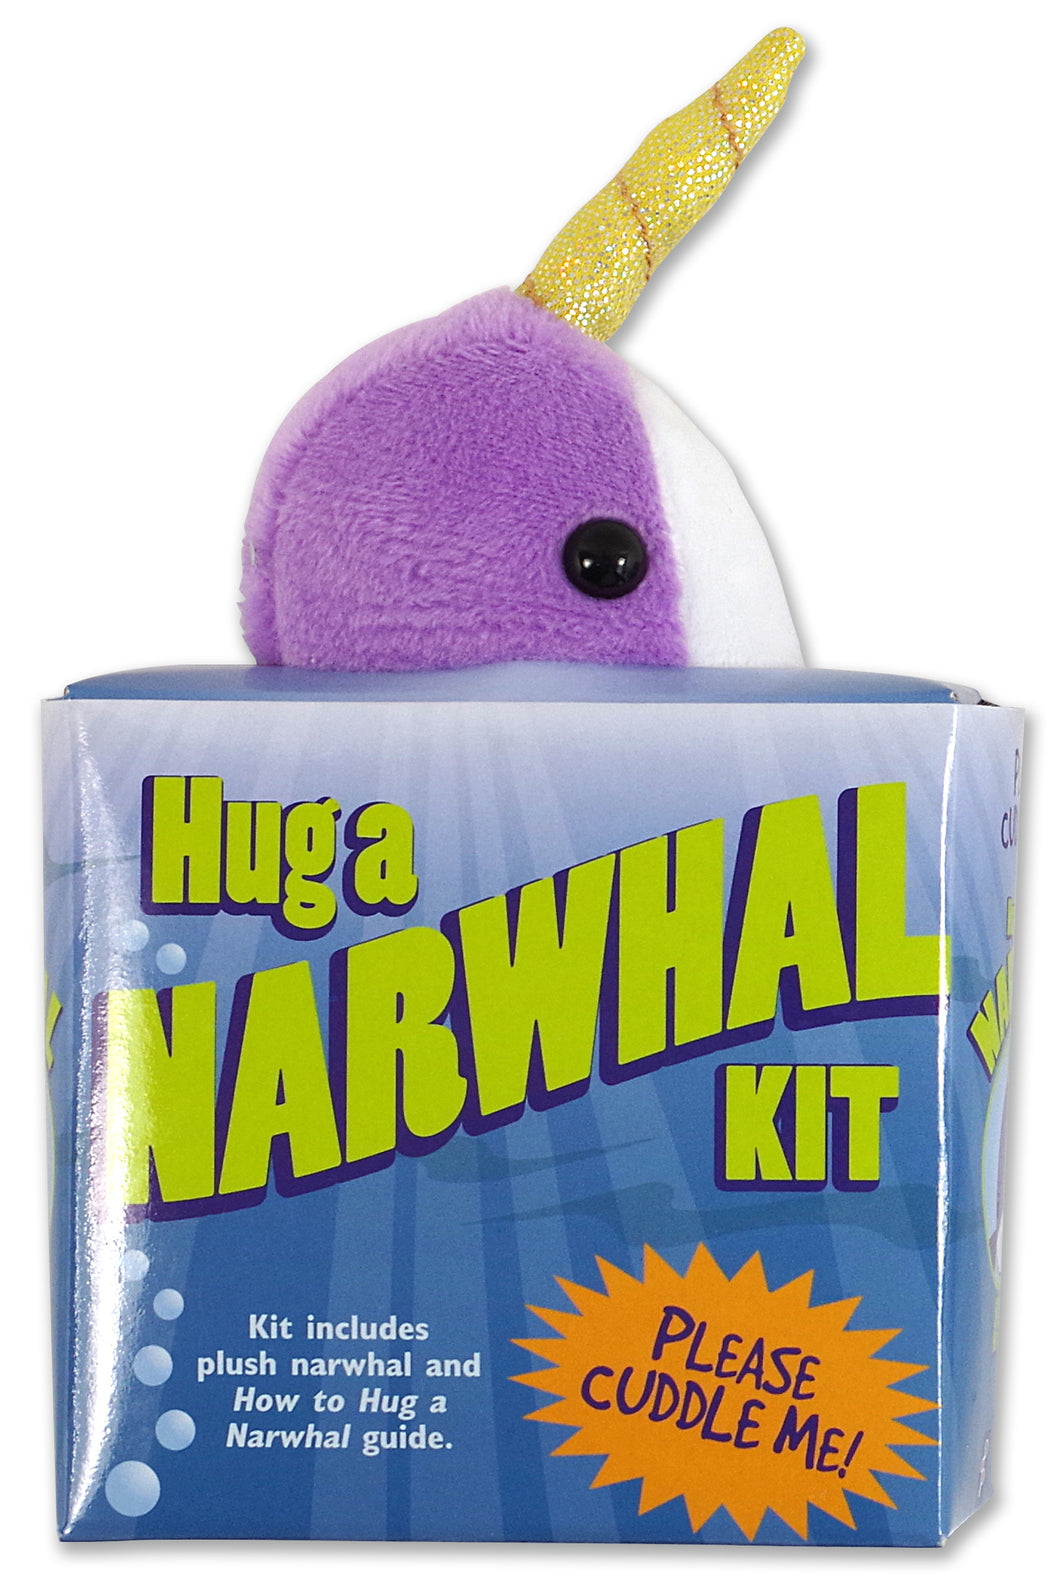 Peter Pauper Press Hug a Narwal Kit